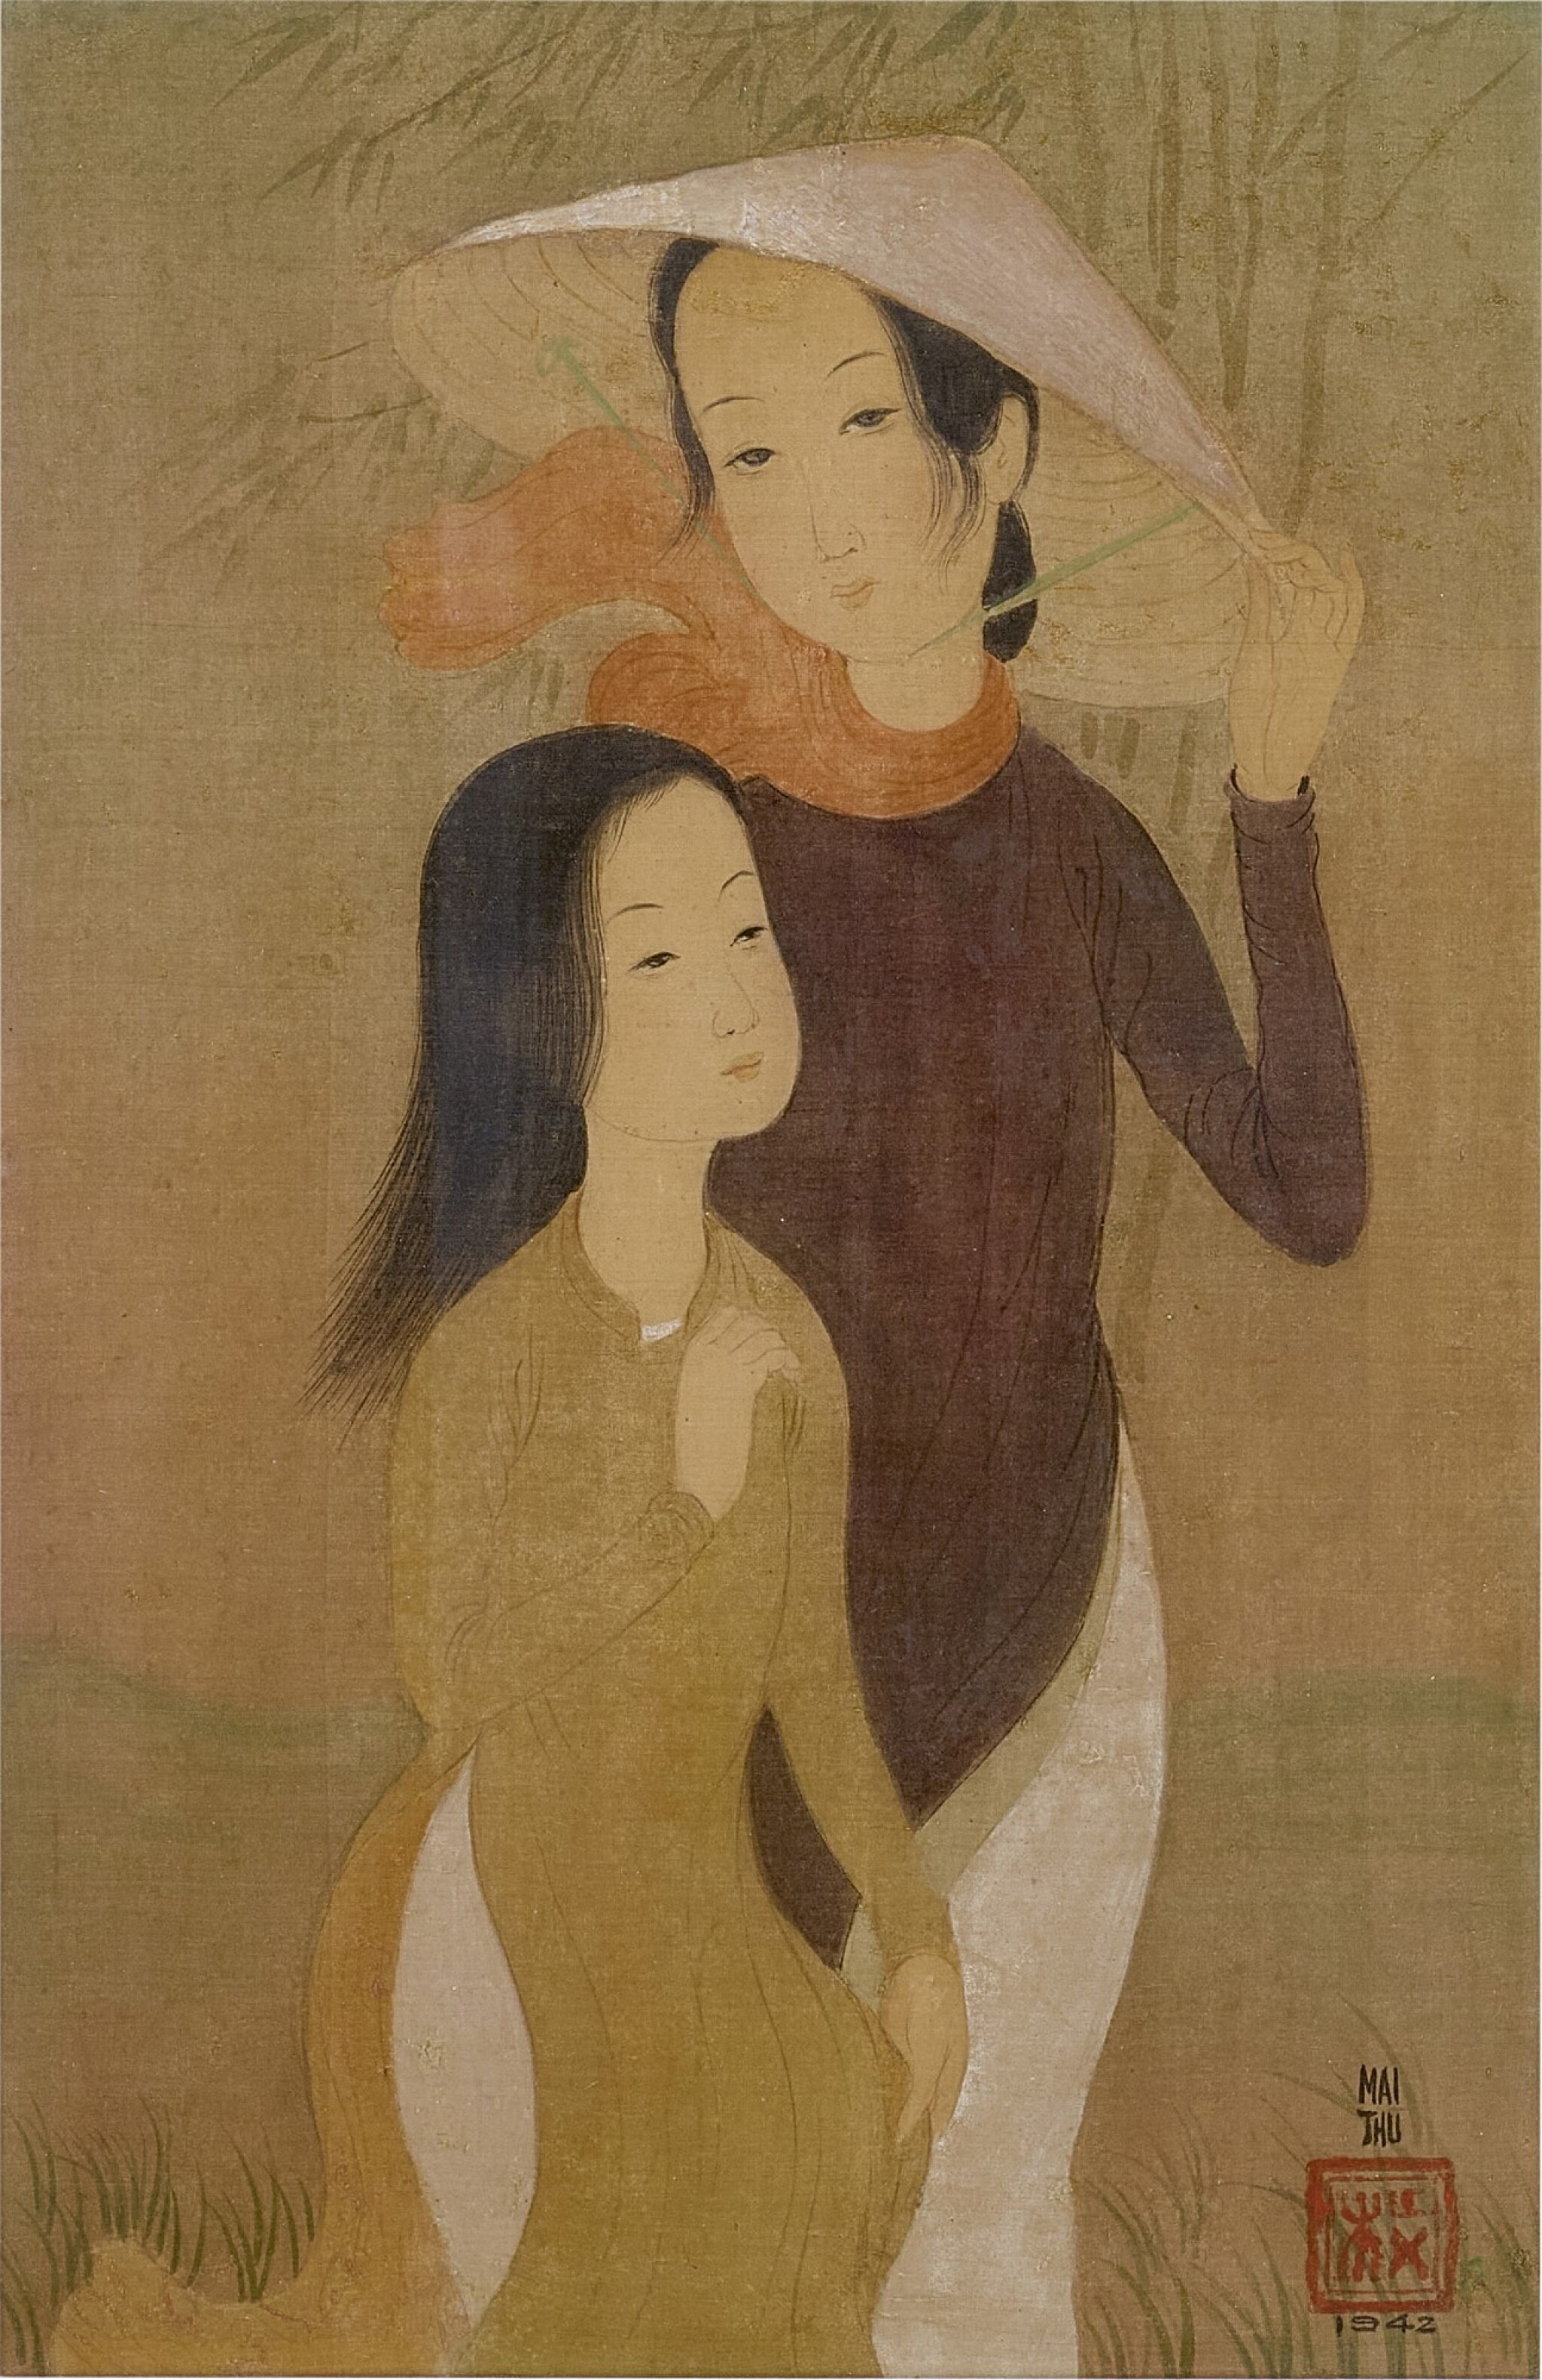 View full screen - View 1 of Lot 233. MAI TRUNG THU 梅忠恕 | DEUX JEUNES FEMMES (TWO YOUNG LADIES) 兩位少女.